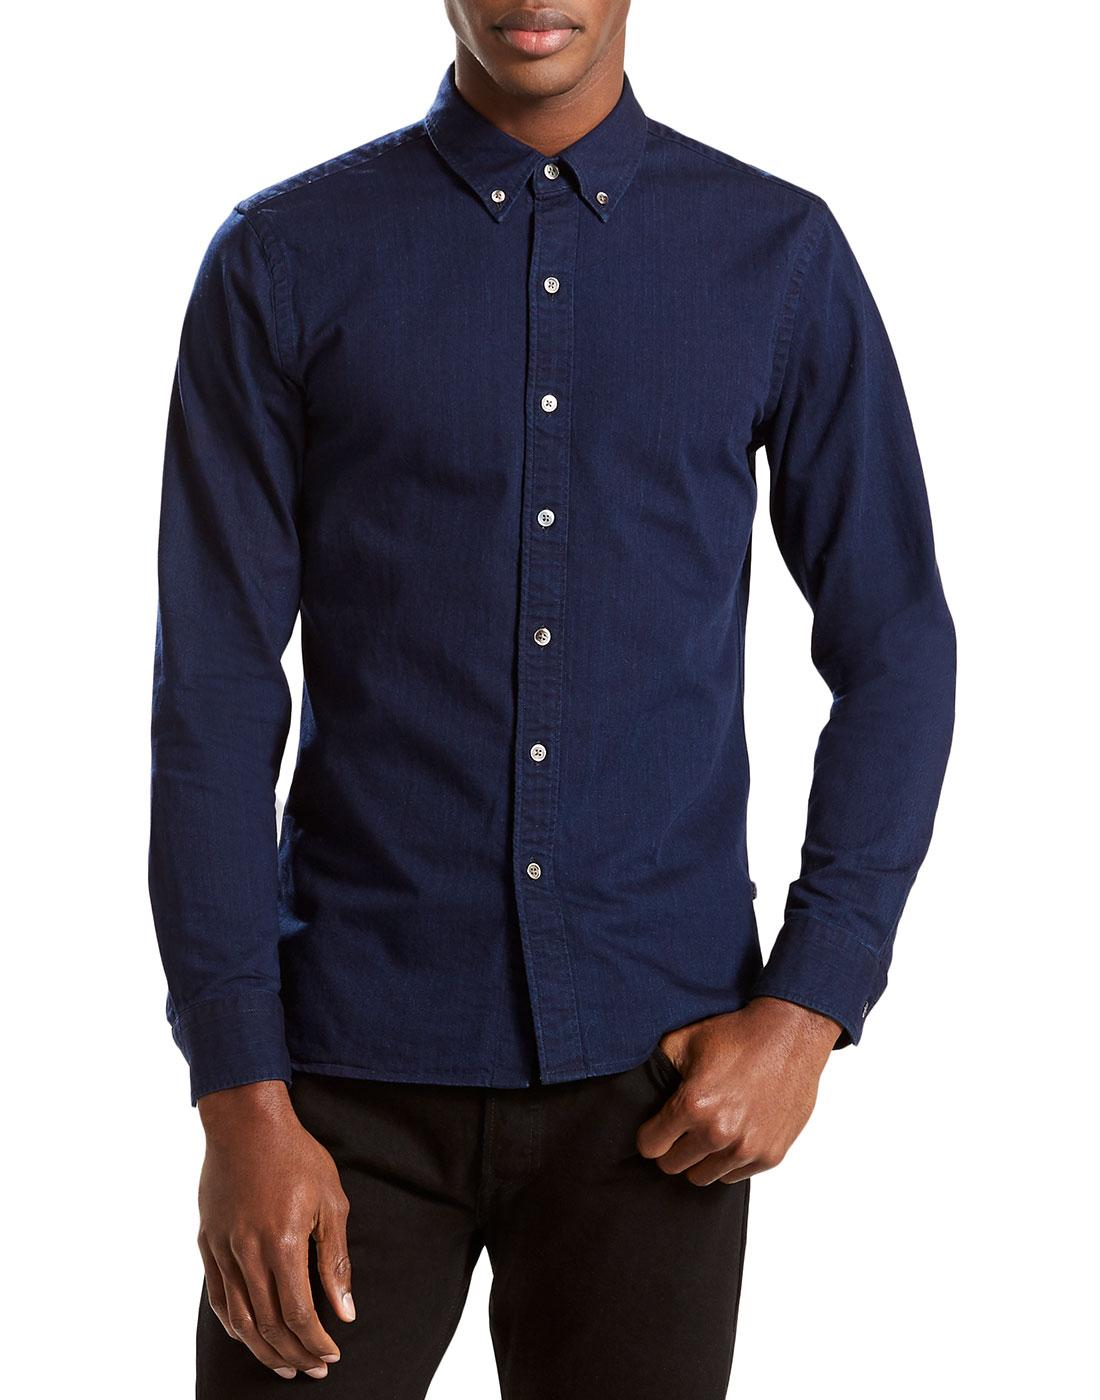 LEVI'S Pacific Mod Button Down Indigo Denim Shirt